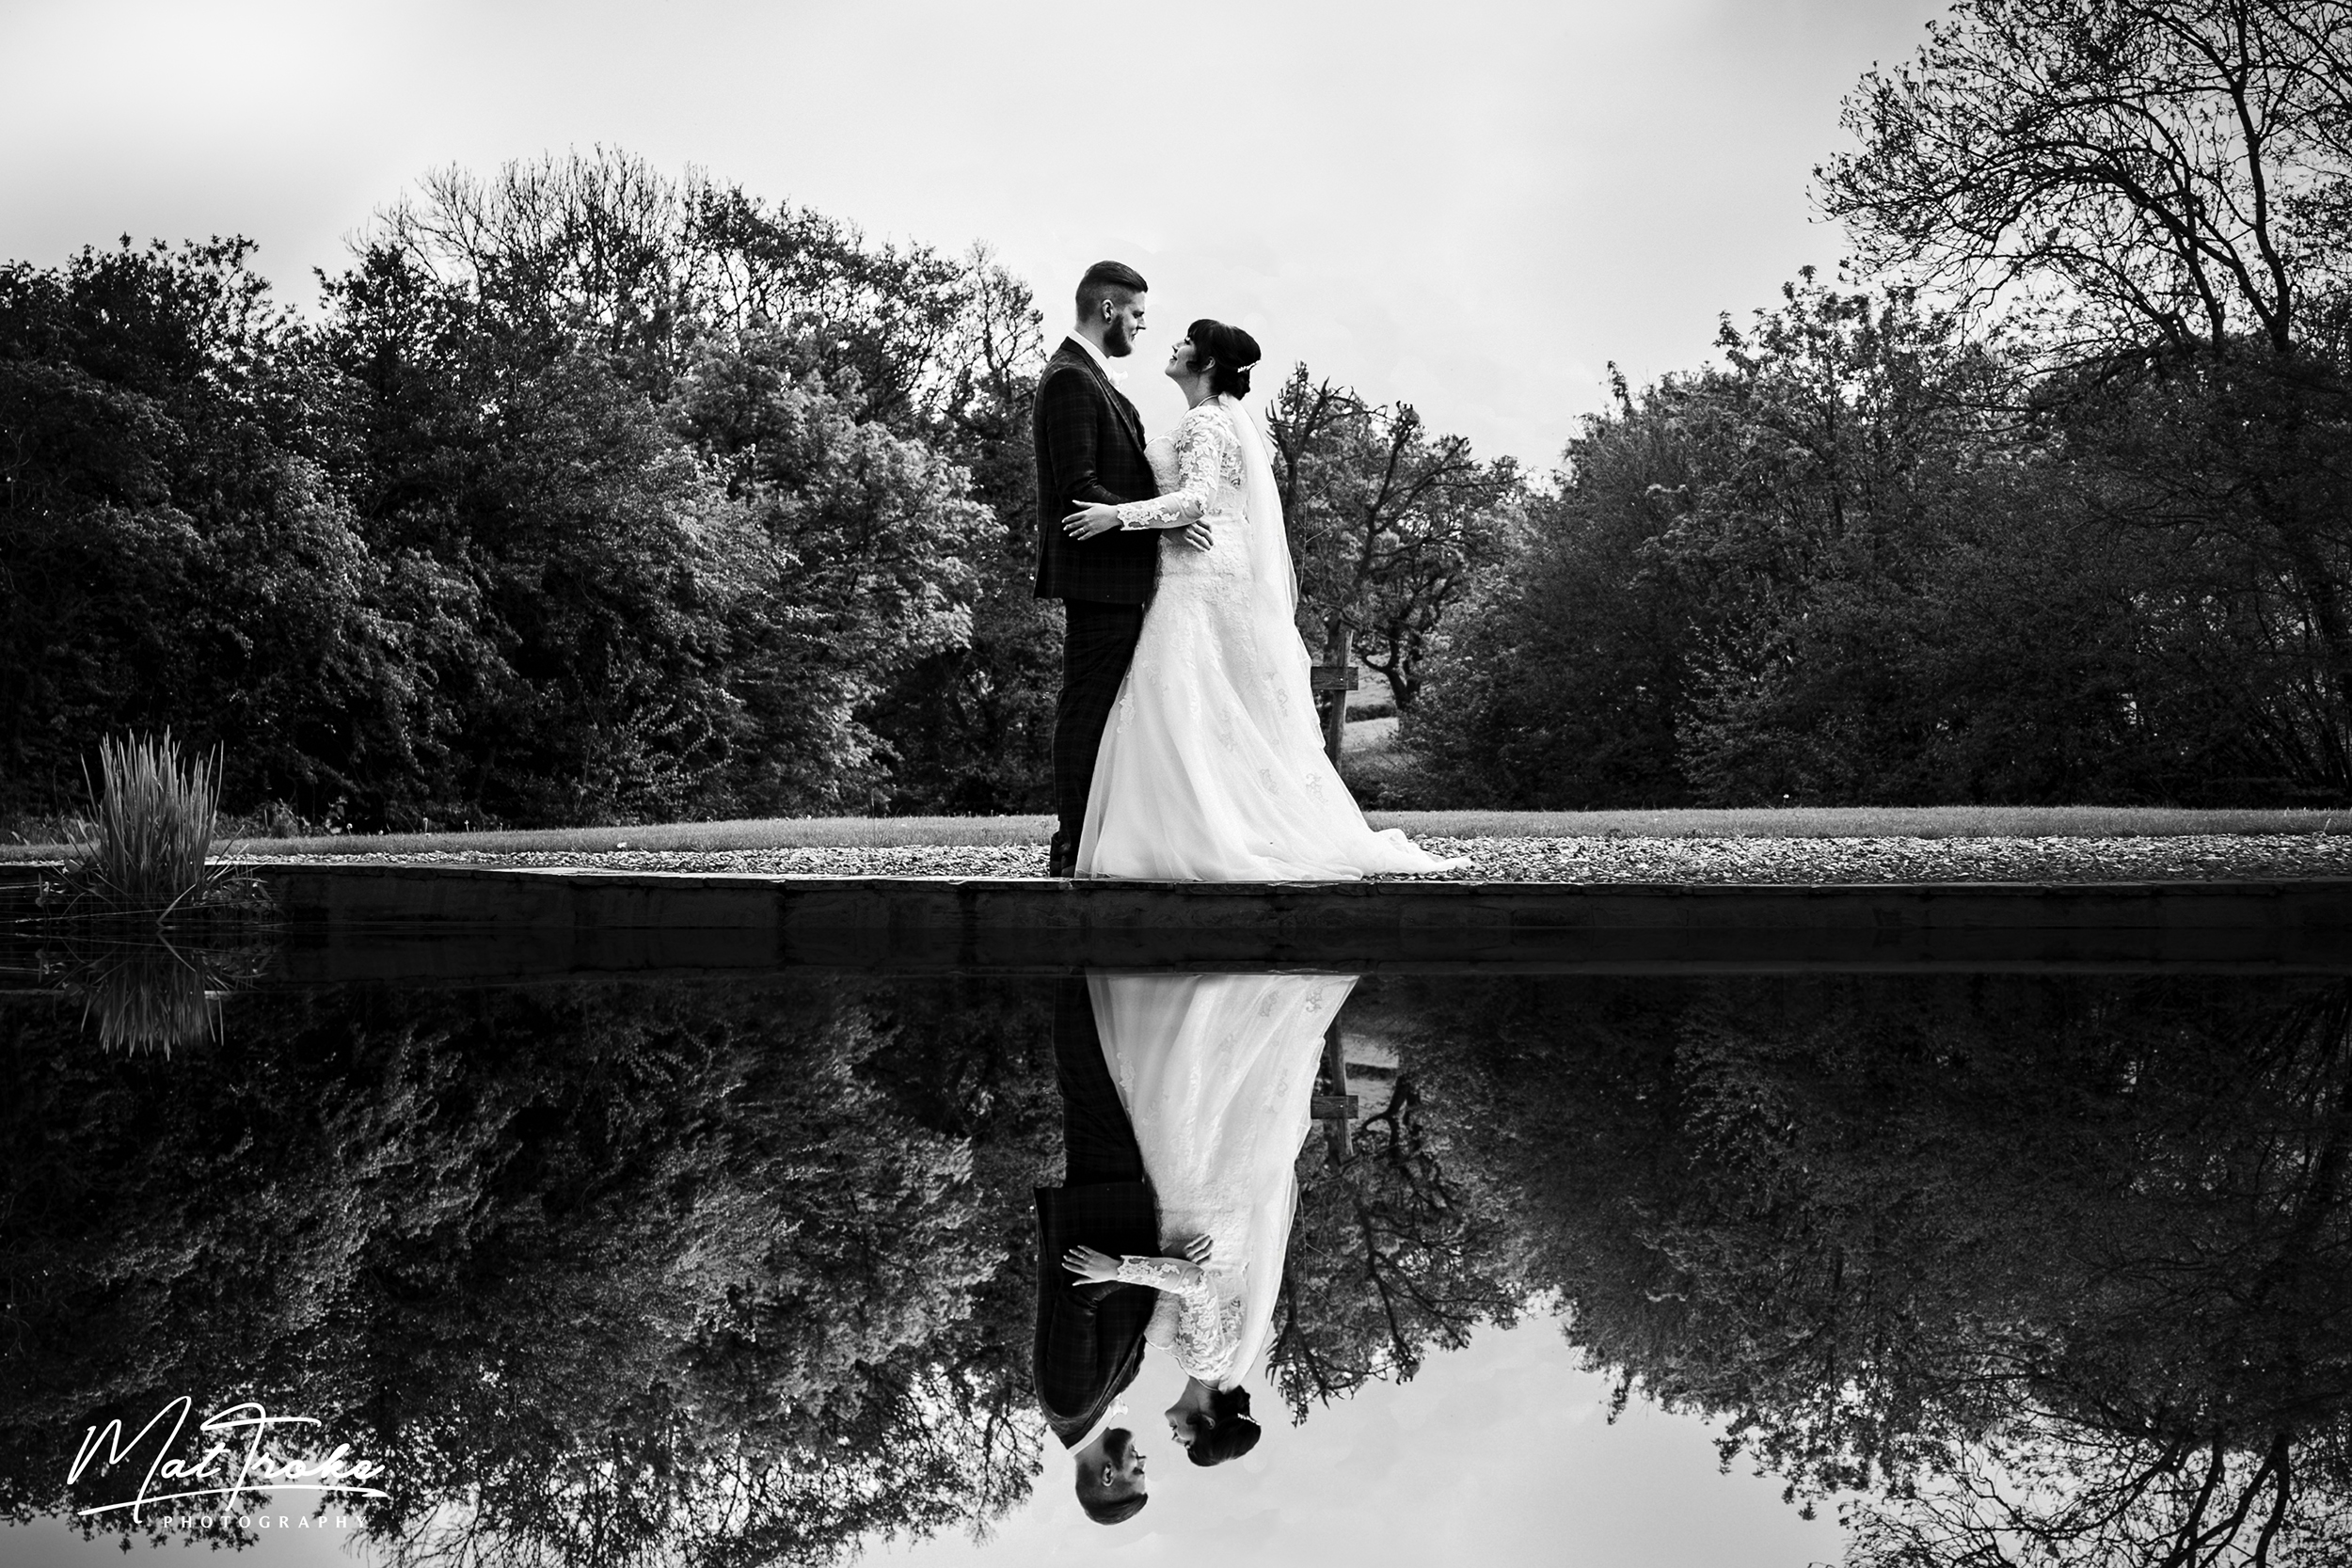 pond-reflection-white-heart-inn-moorwood-alfreton-wedding-photographer-photography-sunset-venue